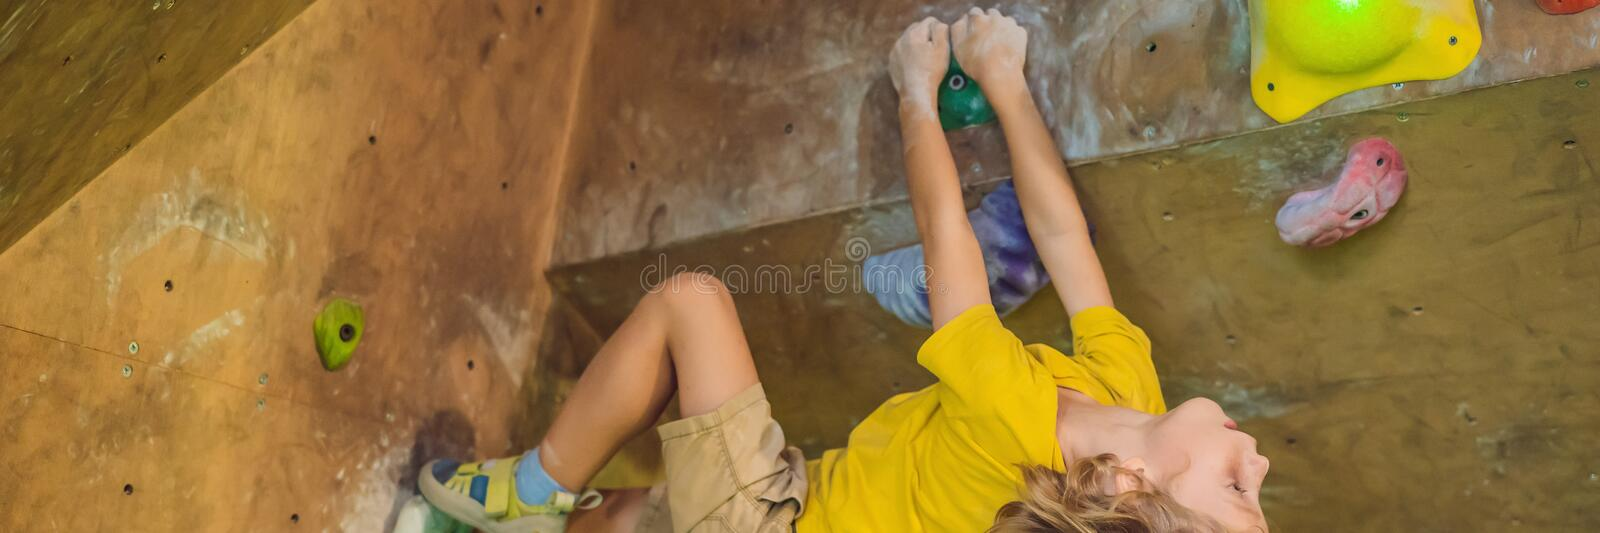 Little boy climbing a rock wall in special boots. indoor BANNER, LONG FORMAT stock image